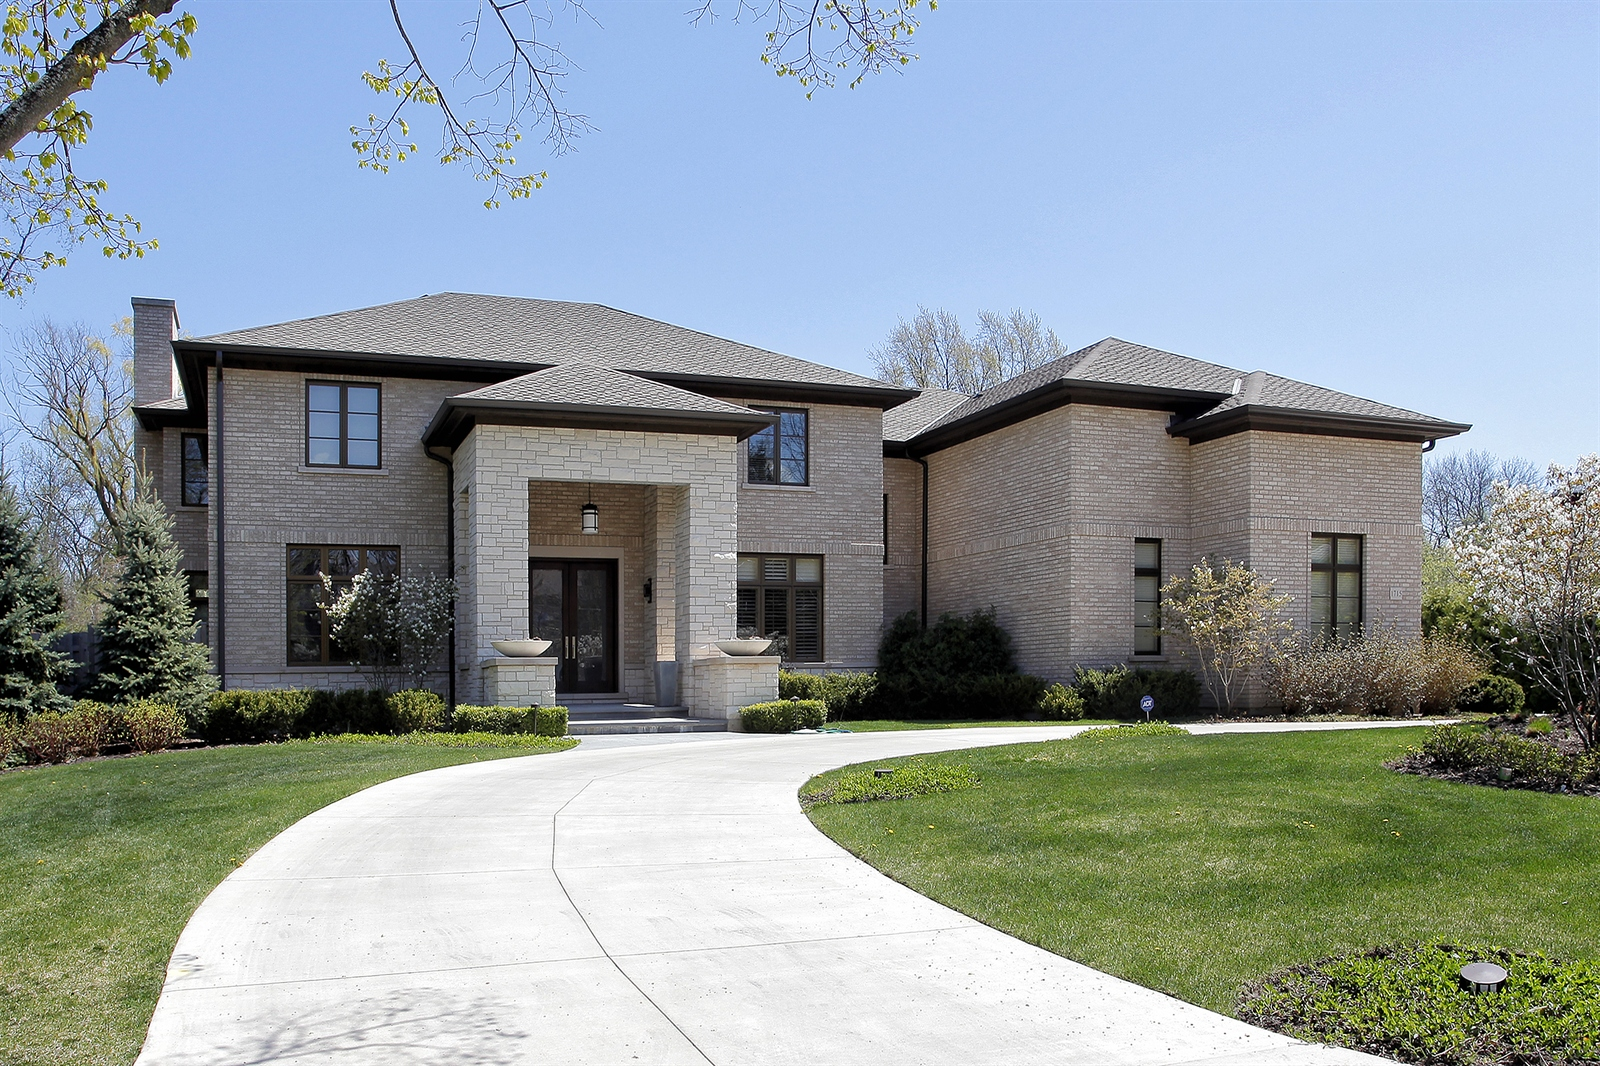 Real Estate Photography - 1715 Cloverdale Ave, Highland Park, IL, 60035 - Exterior Front